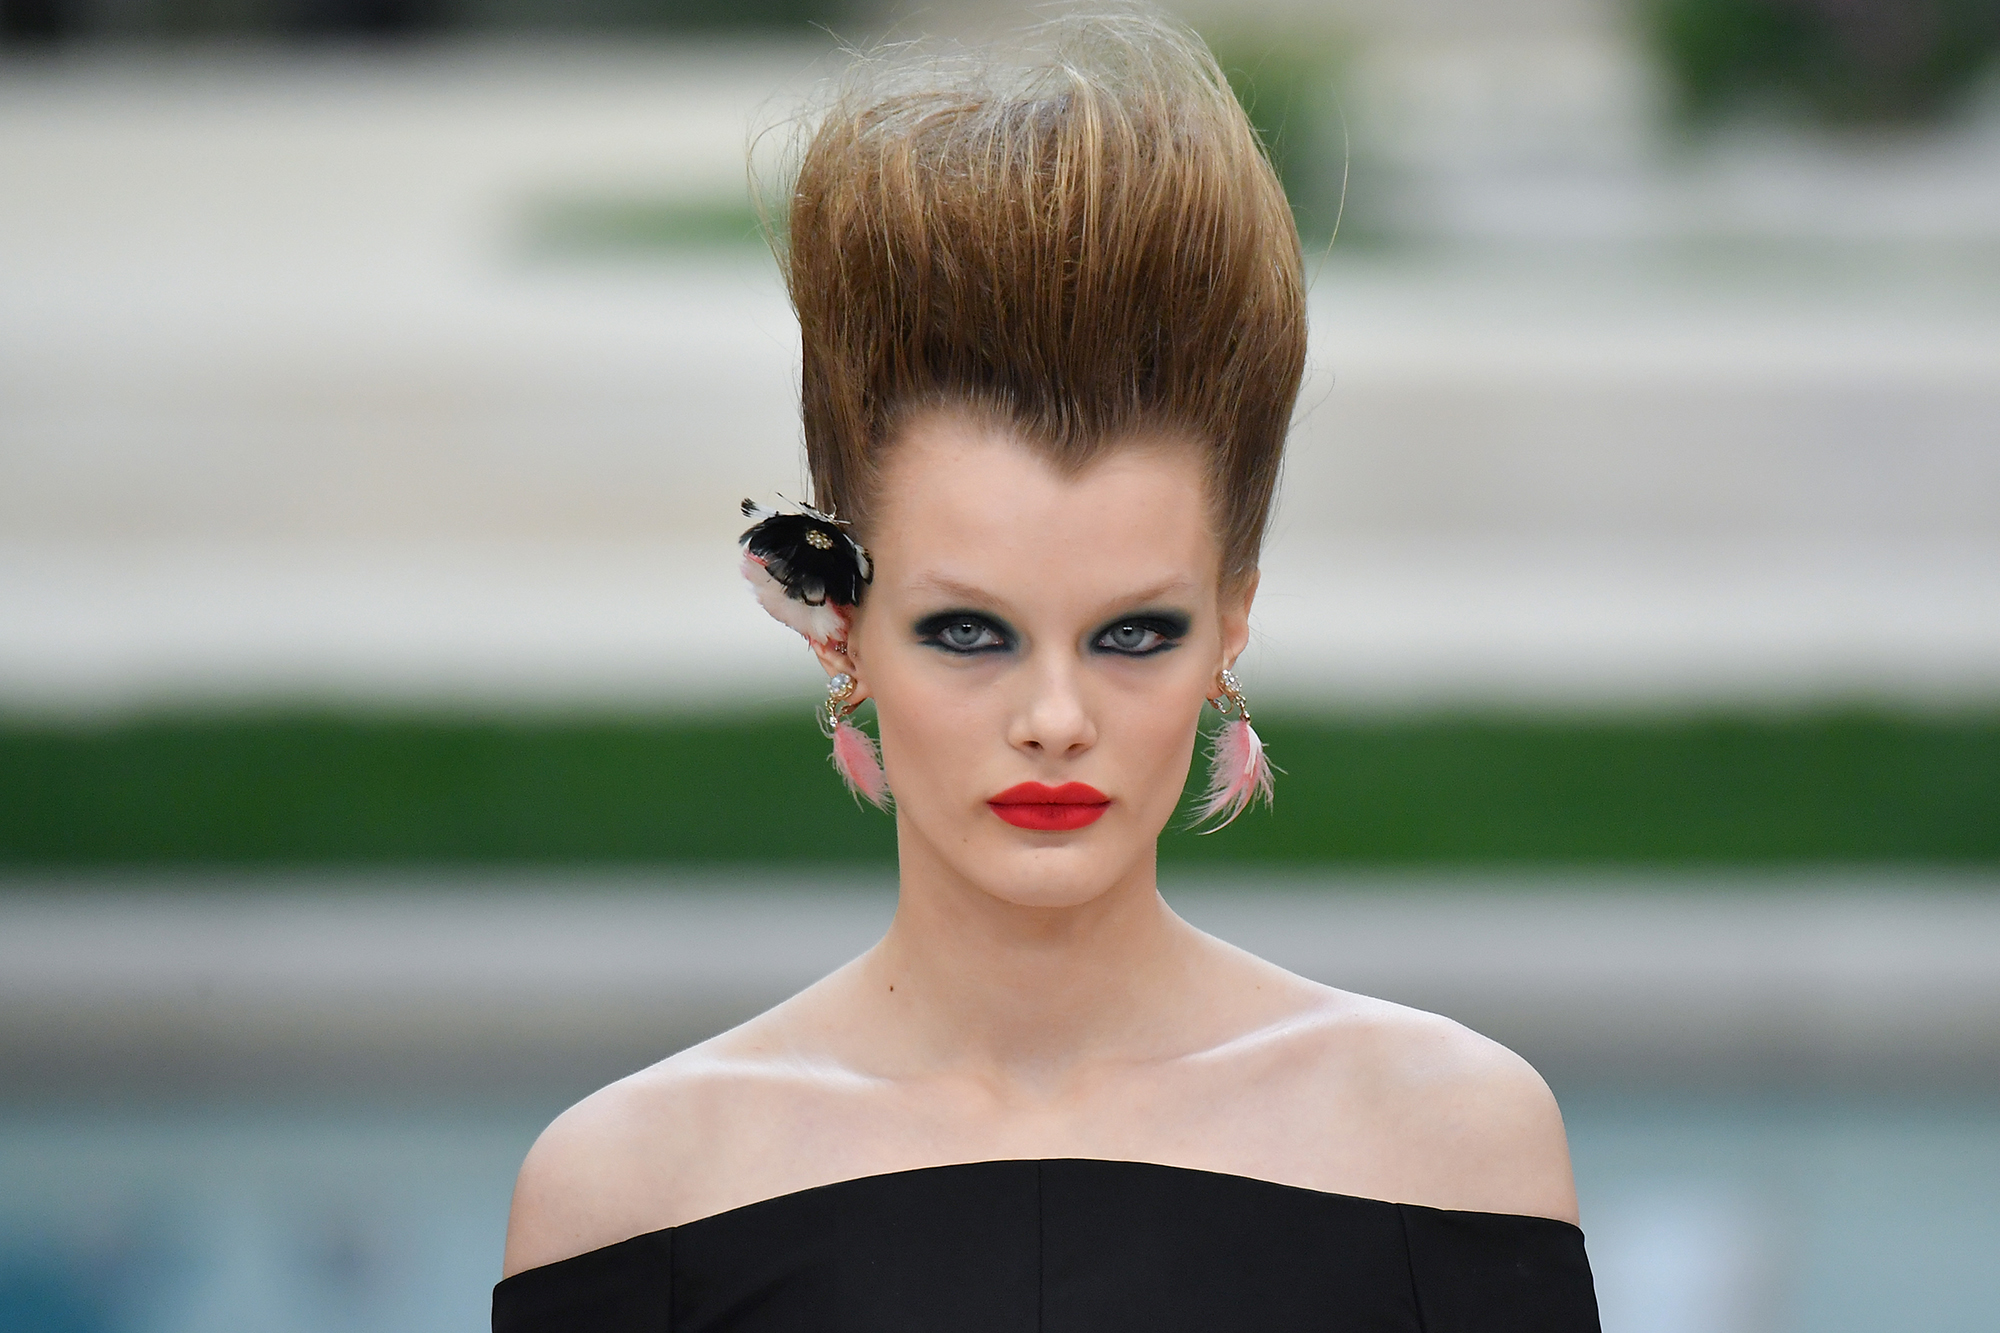 Chanel Haute Couture 2019 Featured David Bowie Inspired Hair Time